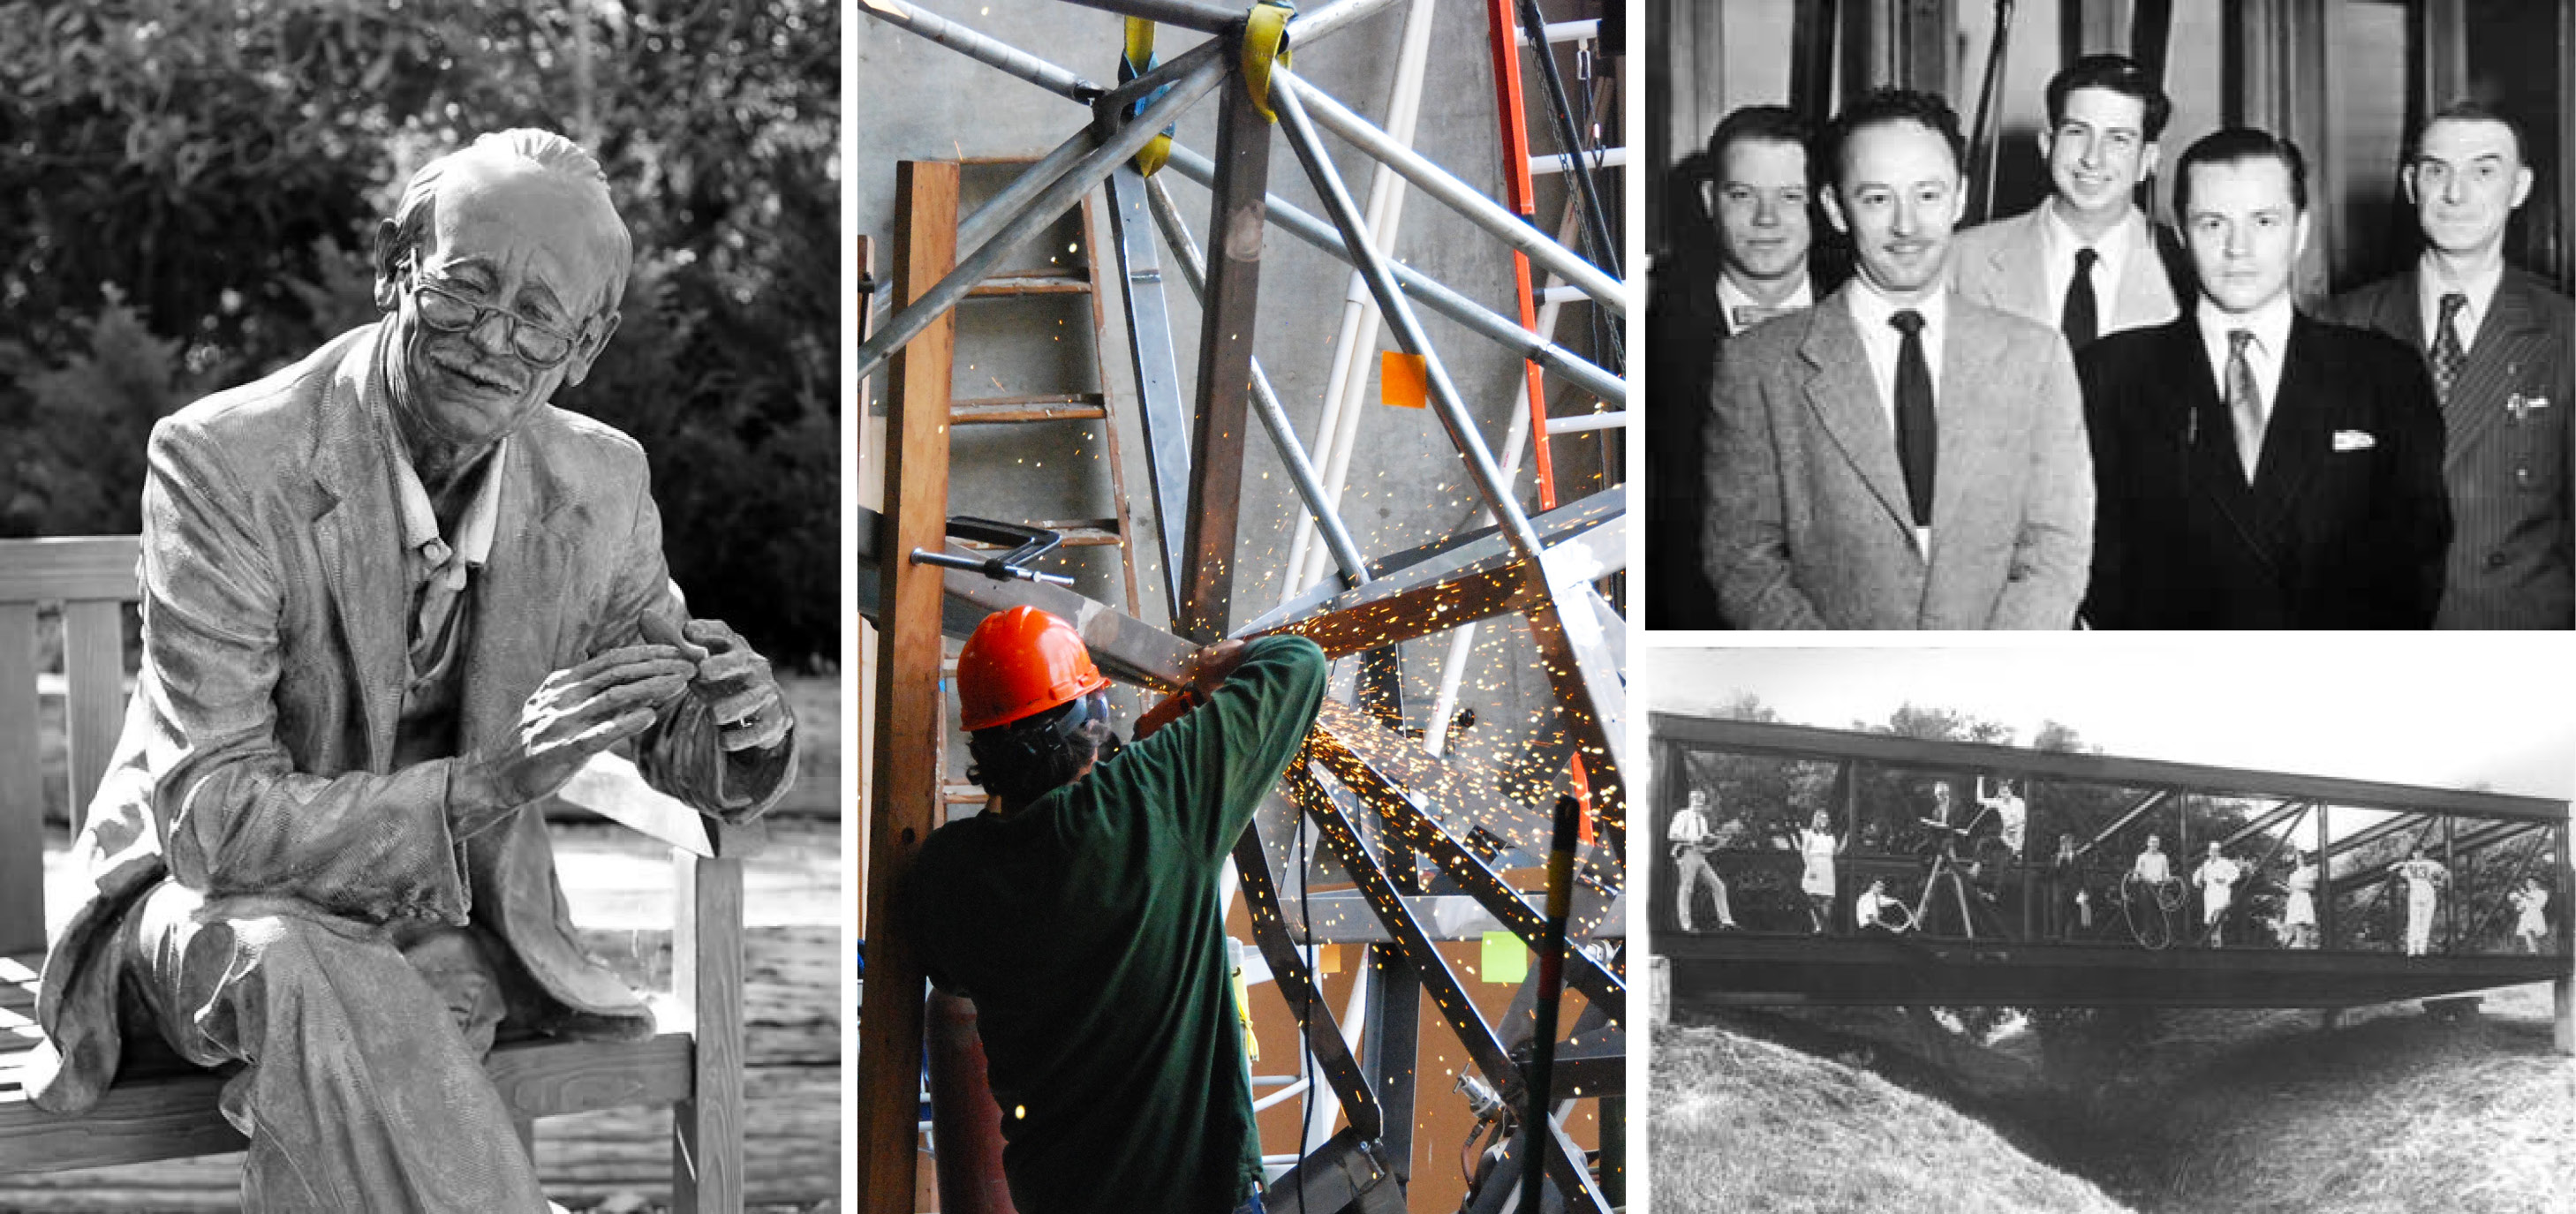 Minor Program Architectural Engineering Cal Poly San Luis Obispo